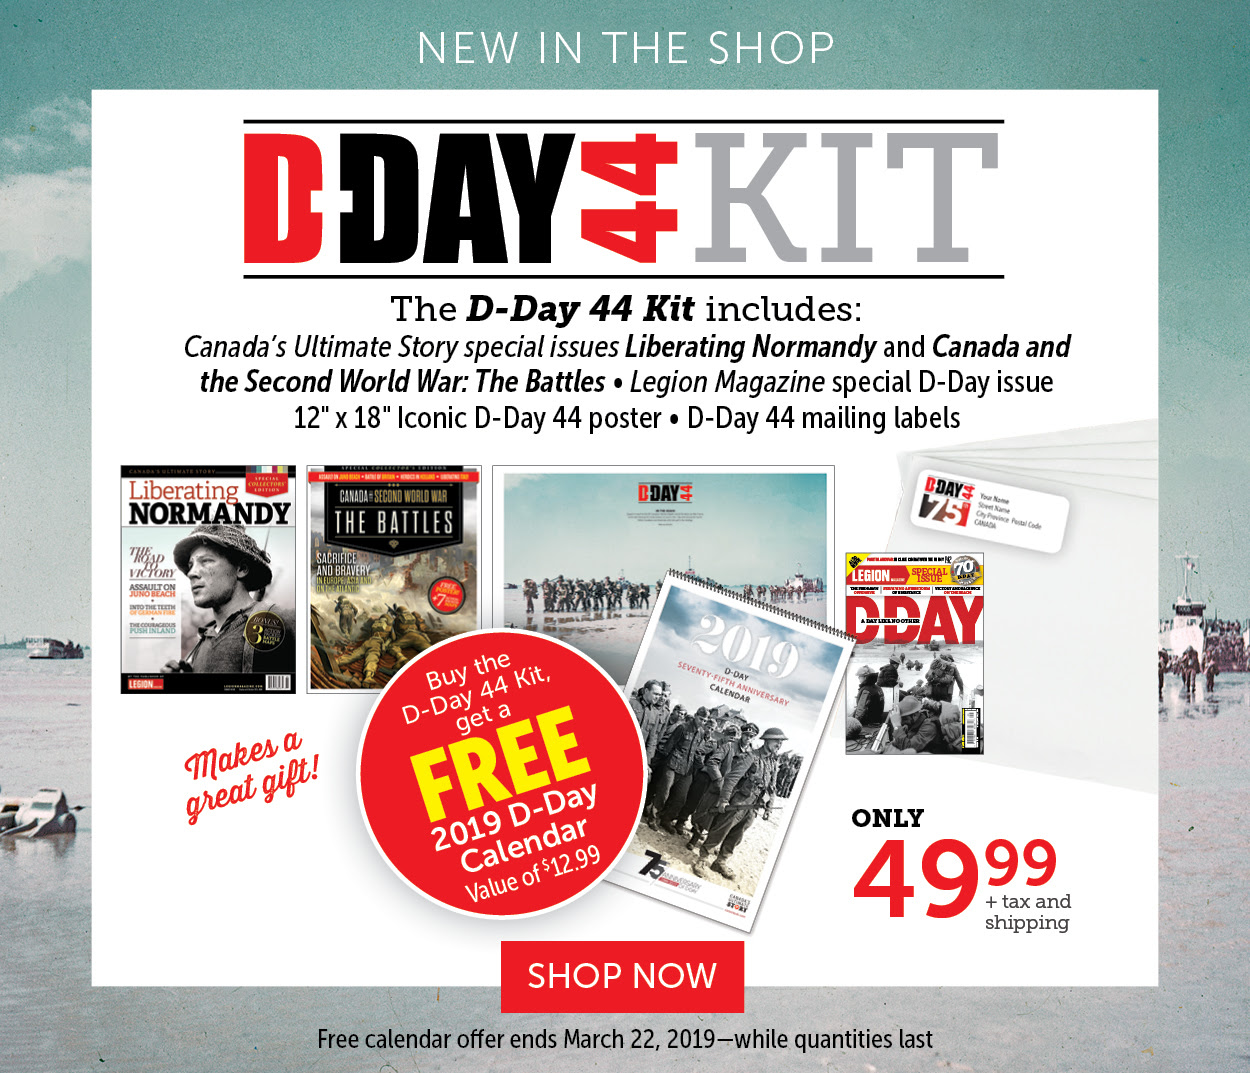 D-DAY Kit| NEW IN SHOP